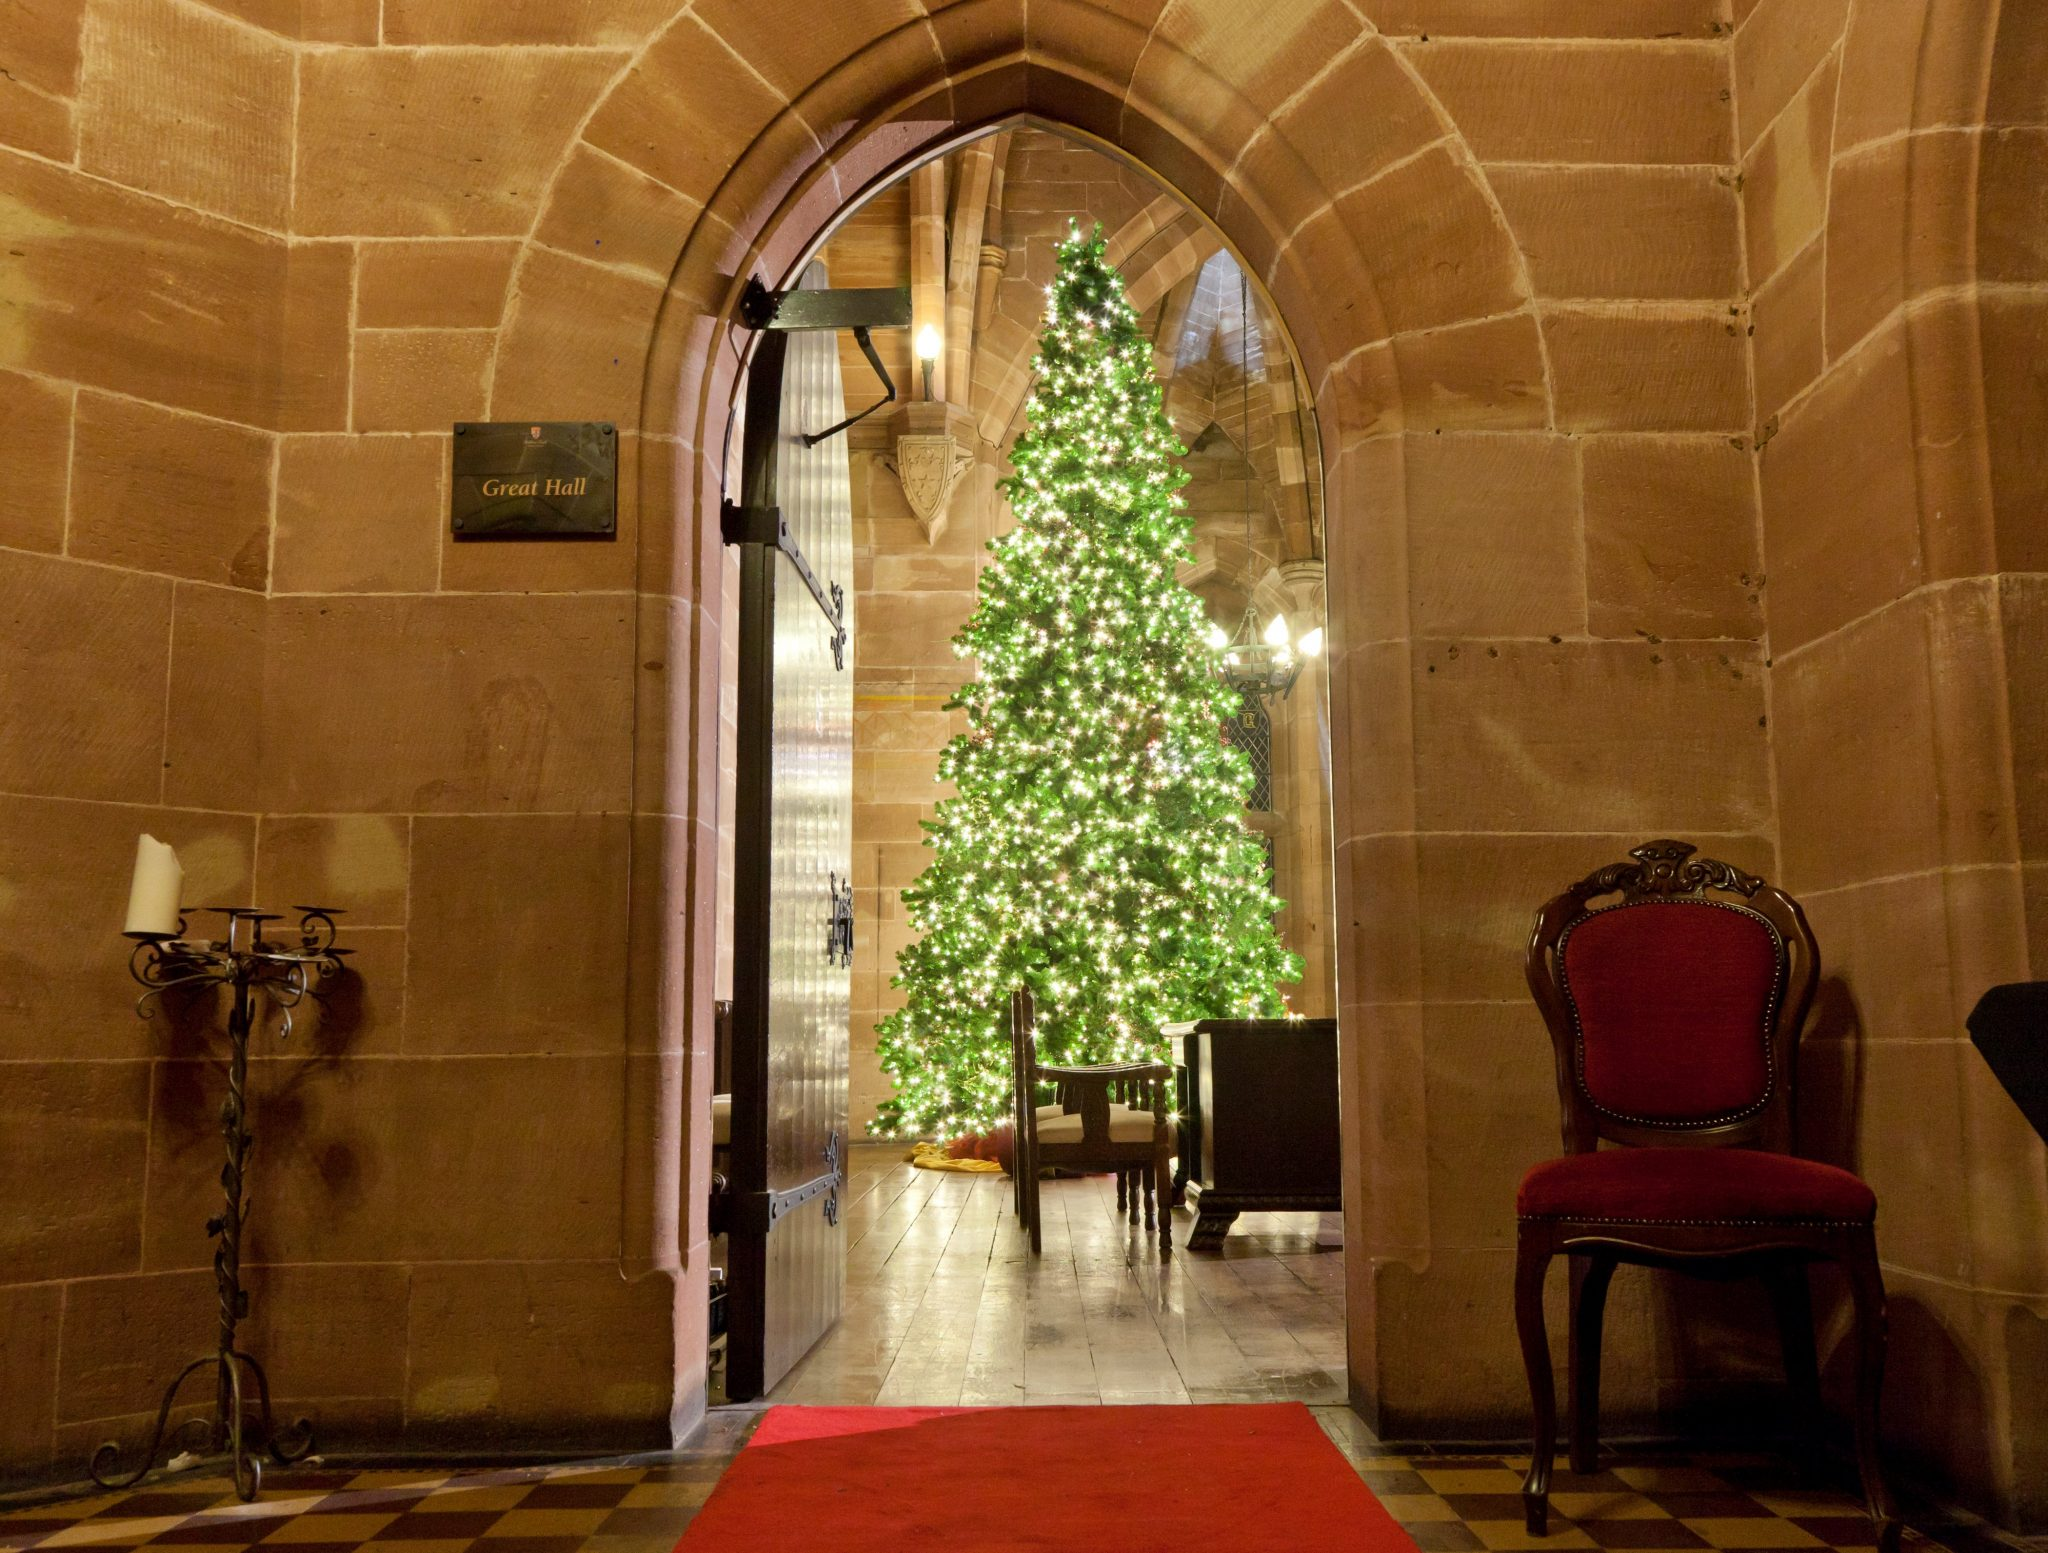 18ft artificial Christmas tree